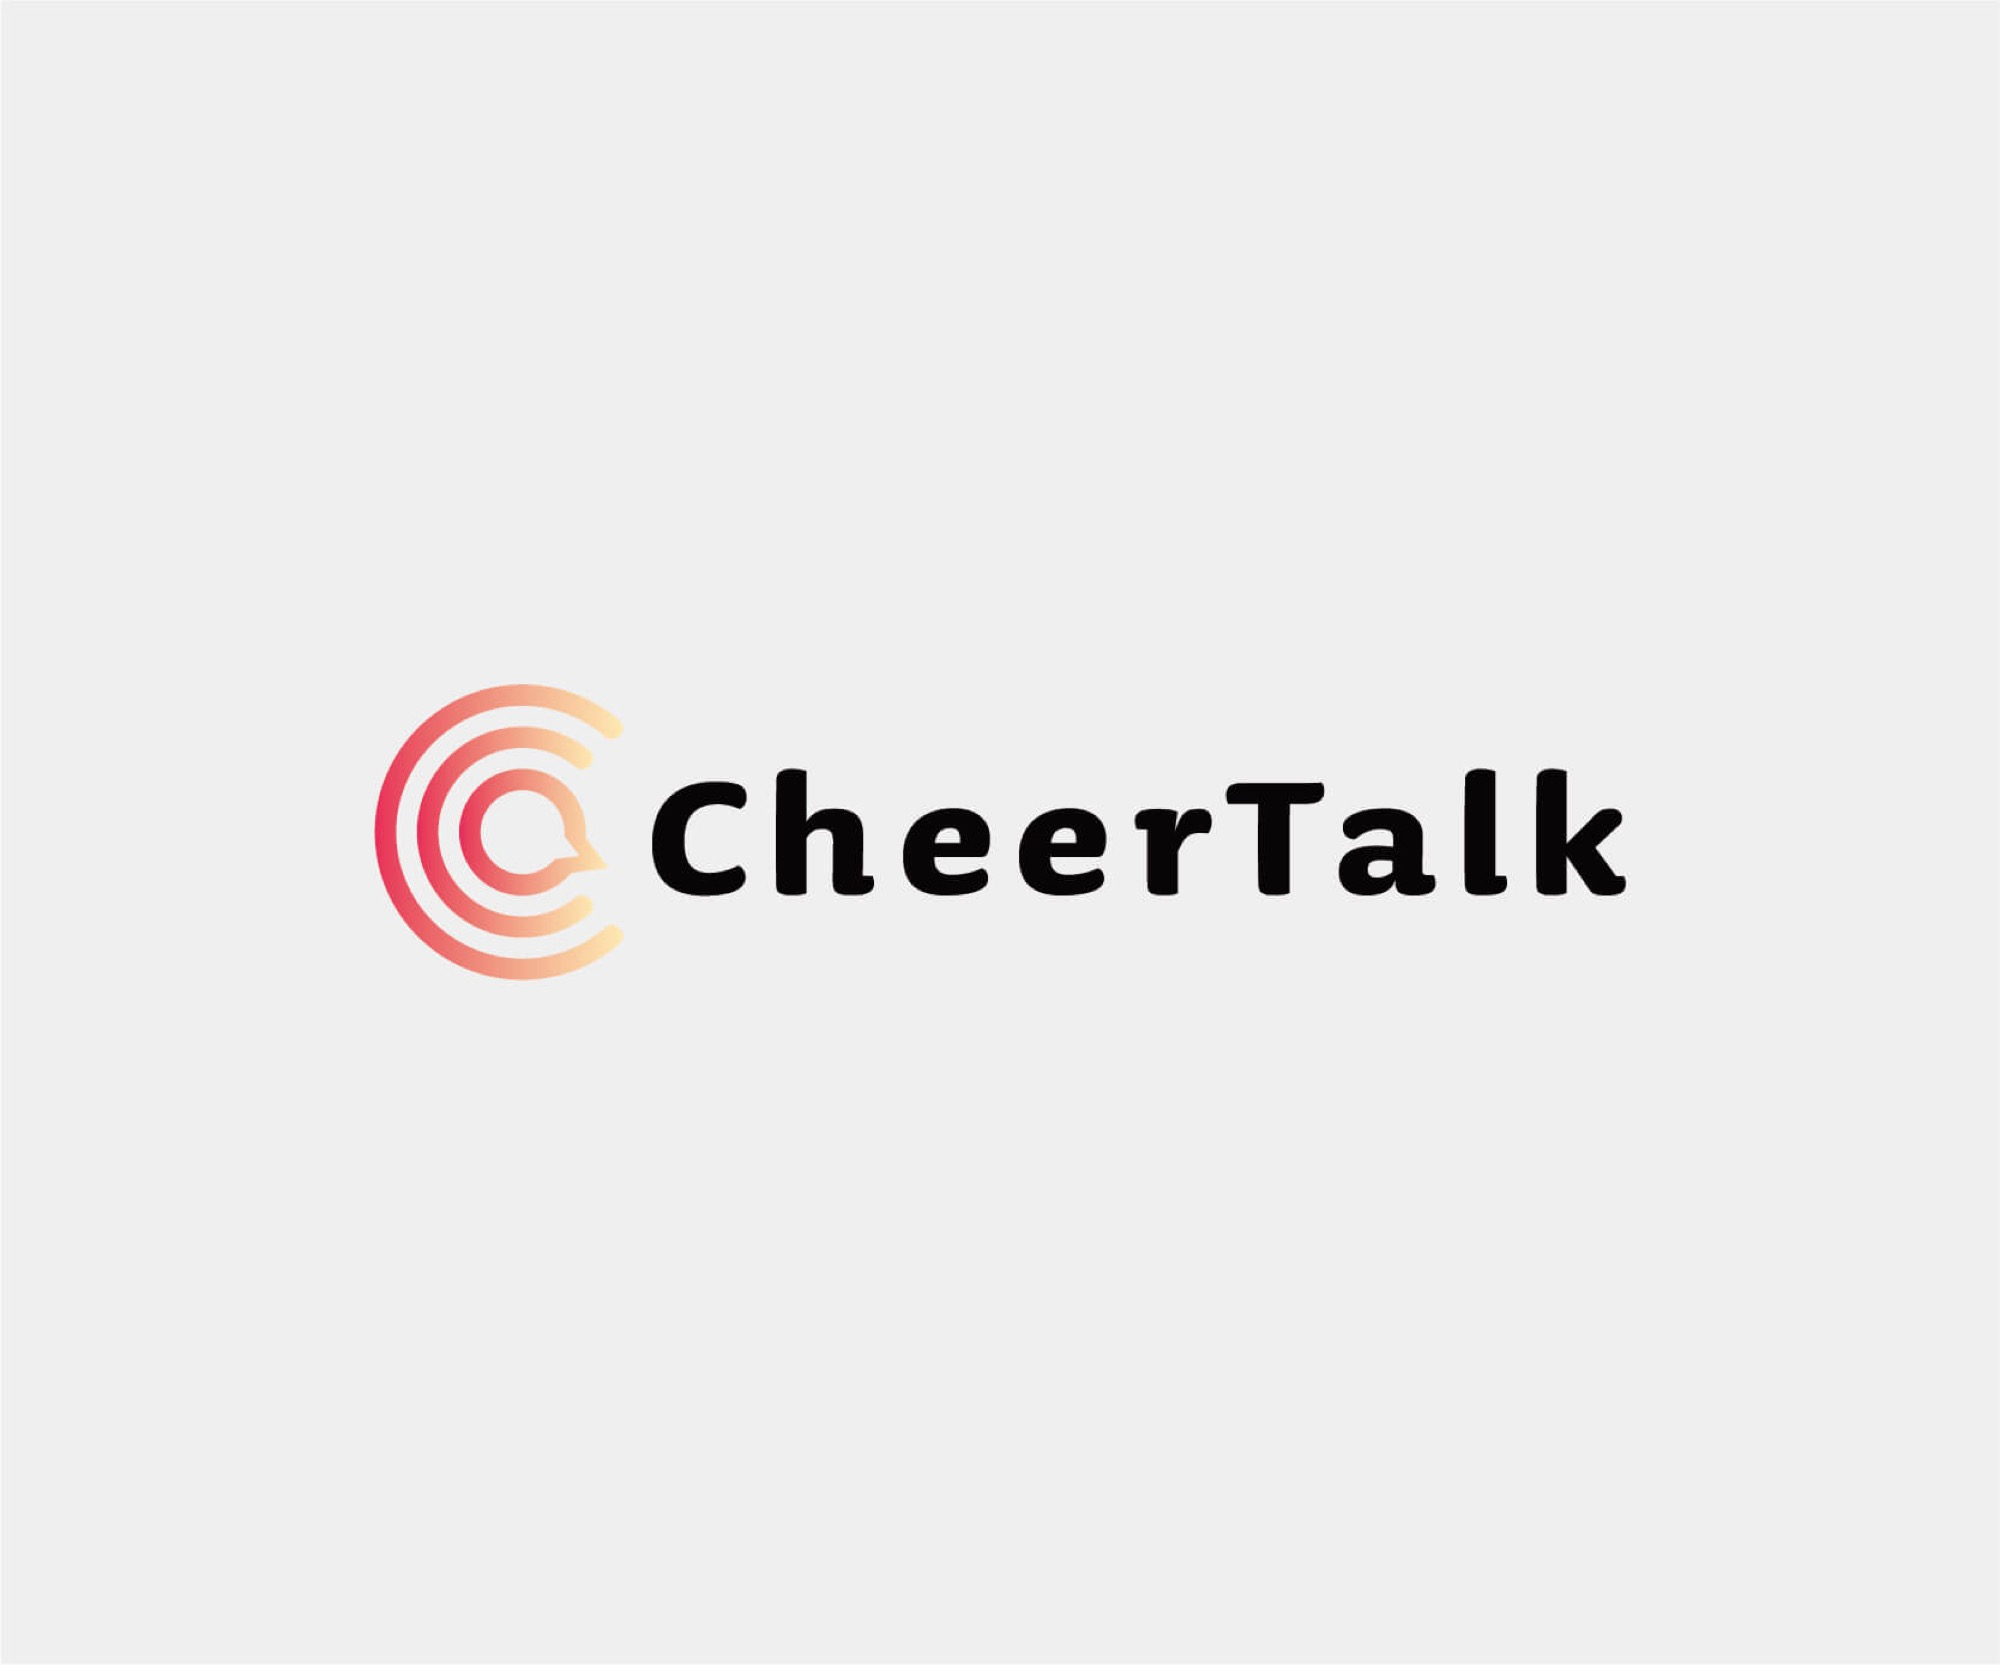 CheerTalk